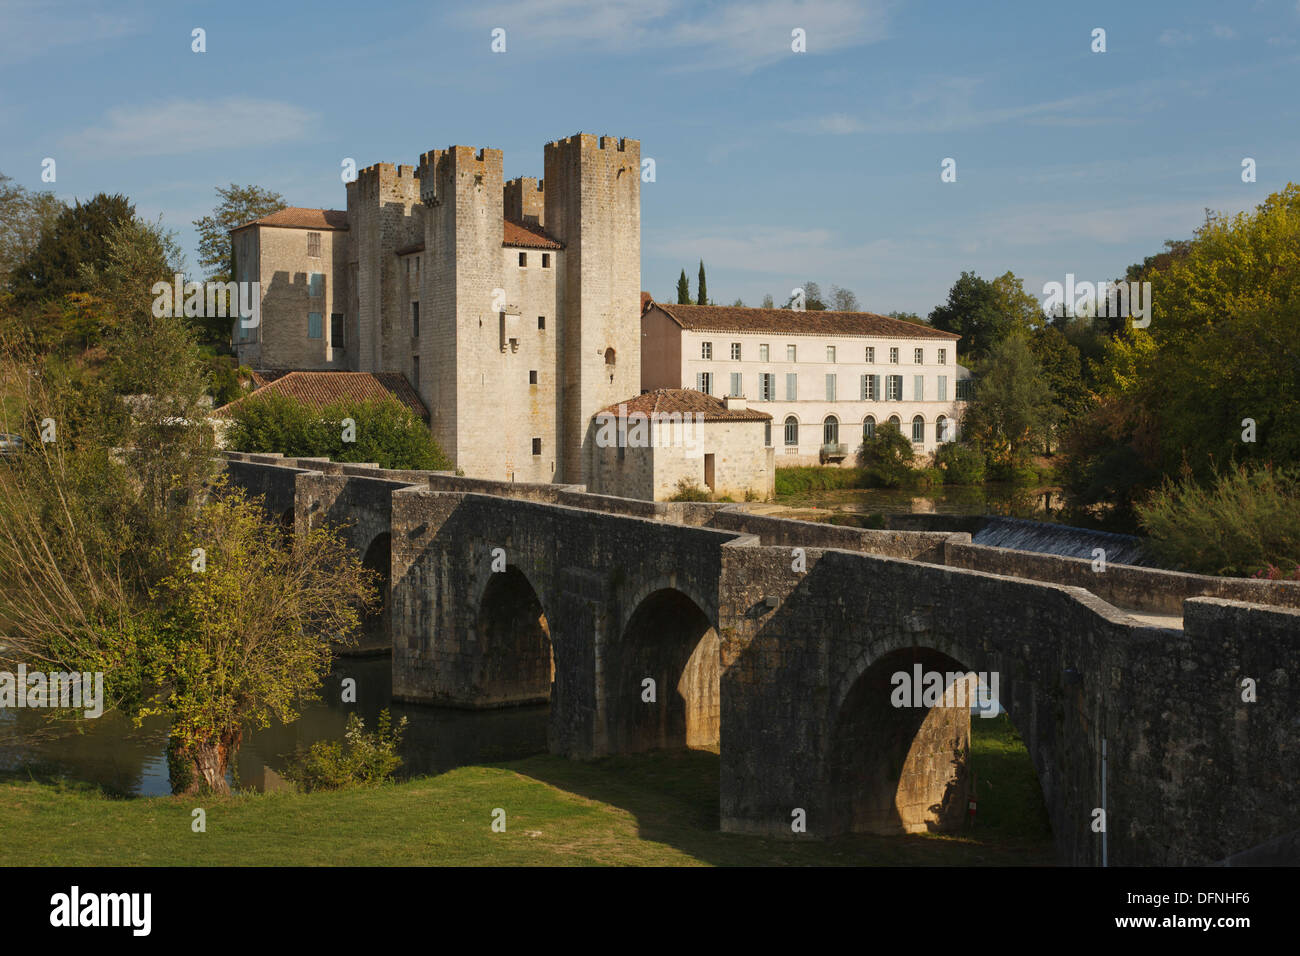 Moulin des Tours, Moulin fortifie d´Henri IV, fortified mill of Henry IV, Pont Roman, bridge, Gelise river, Lavardac, Departemen - Stock Image